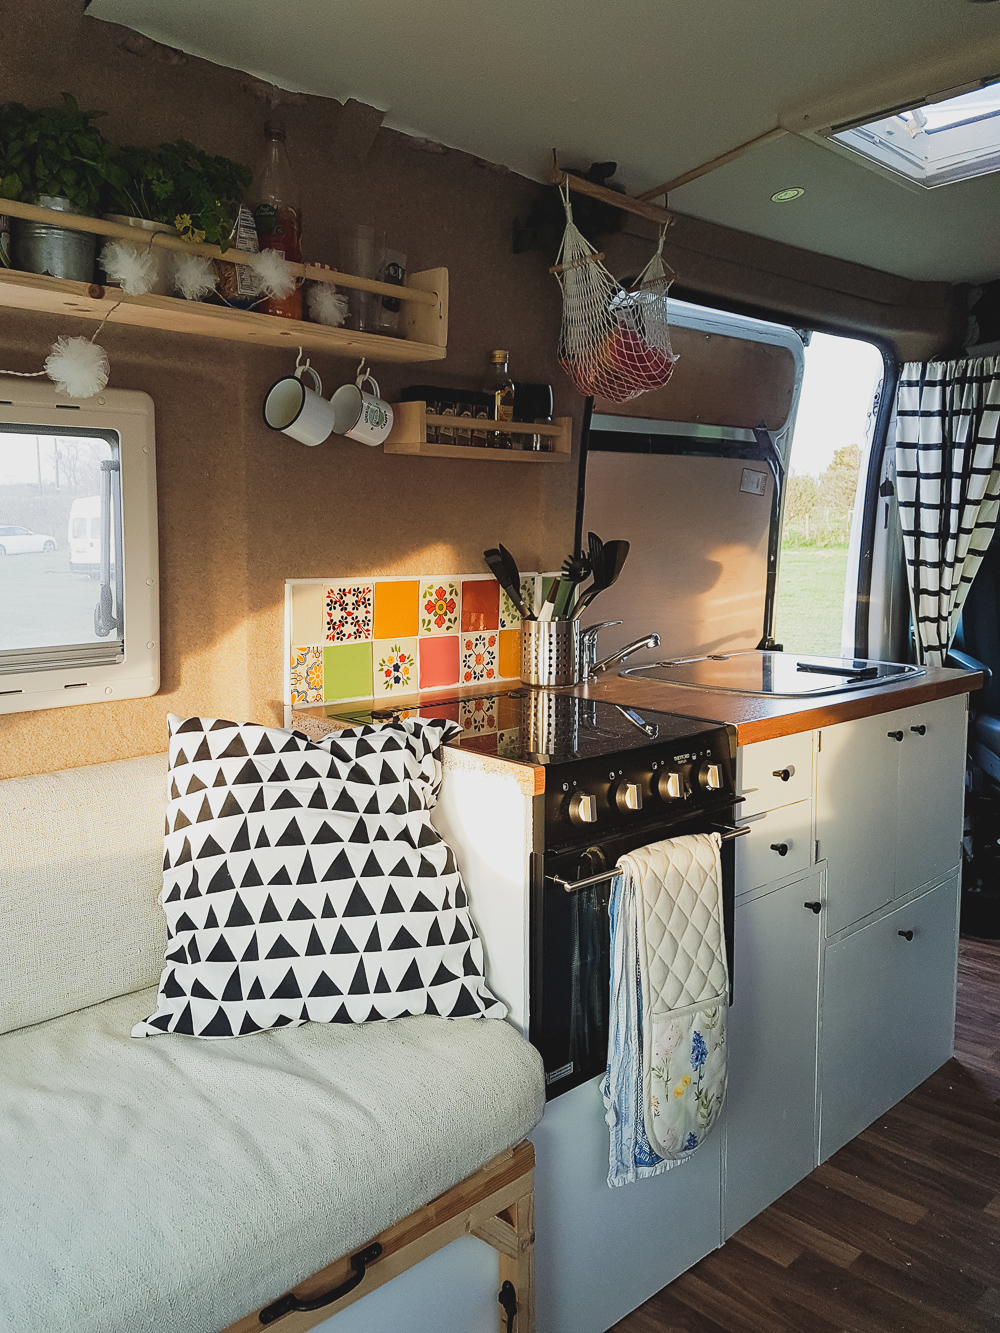 Adventures in a Camper, Campervan